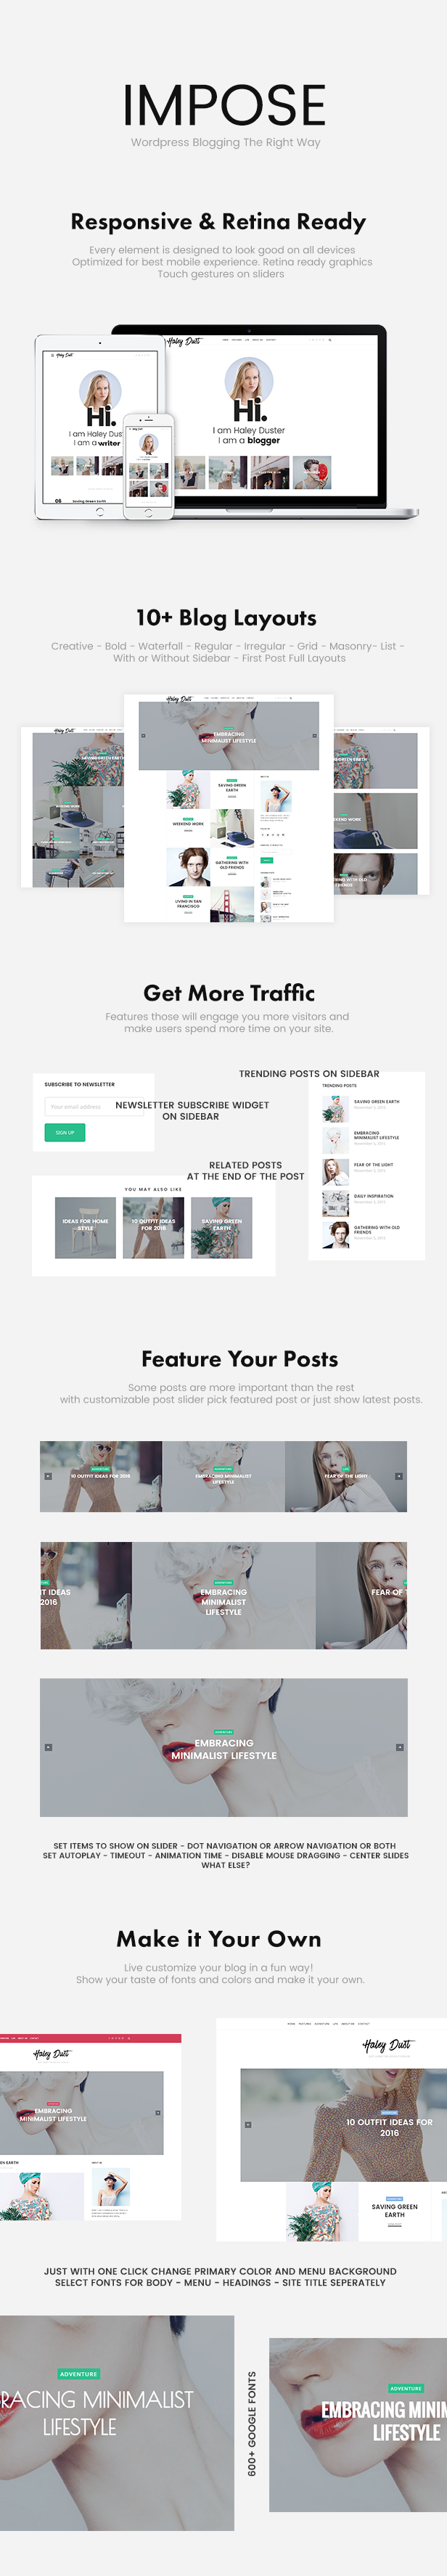 impose blog theme features